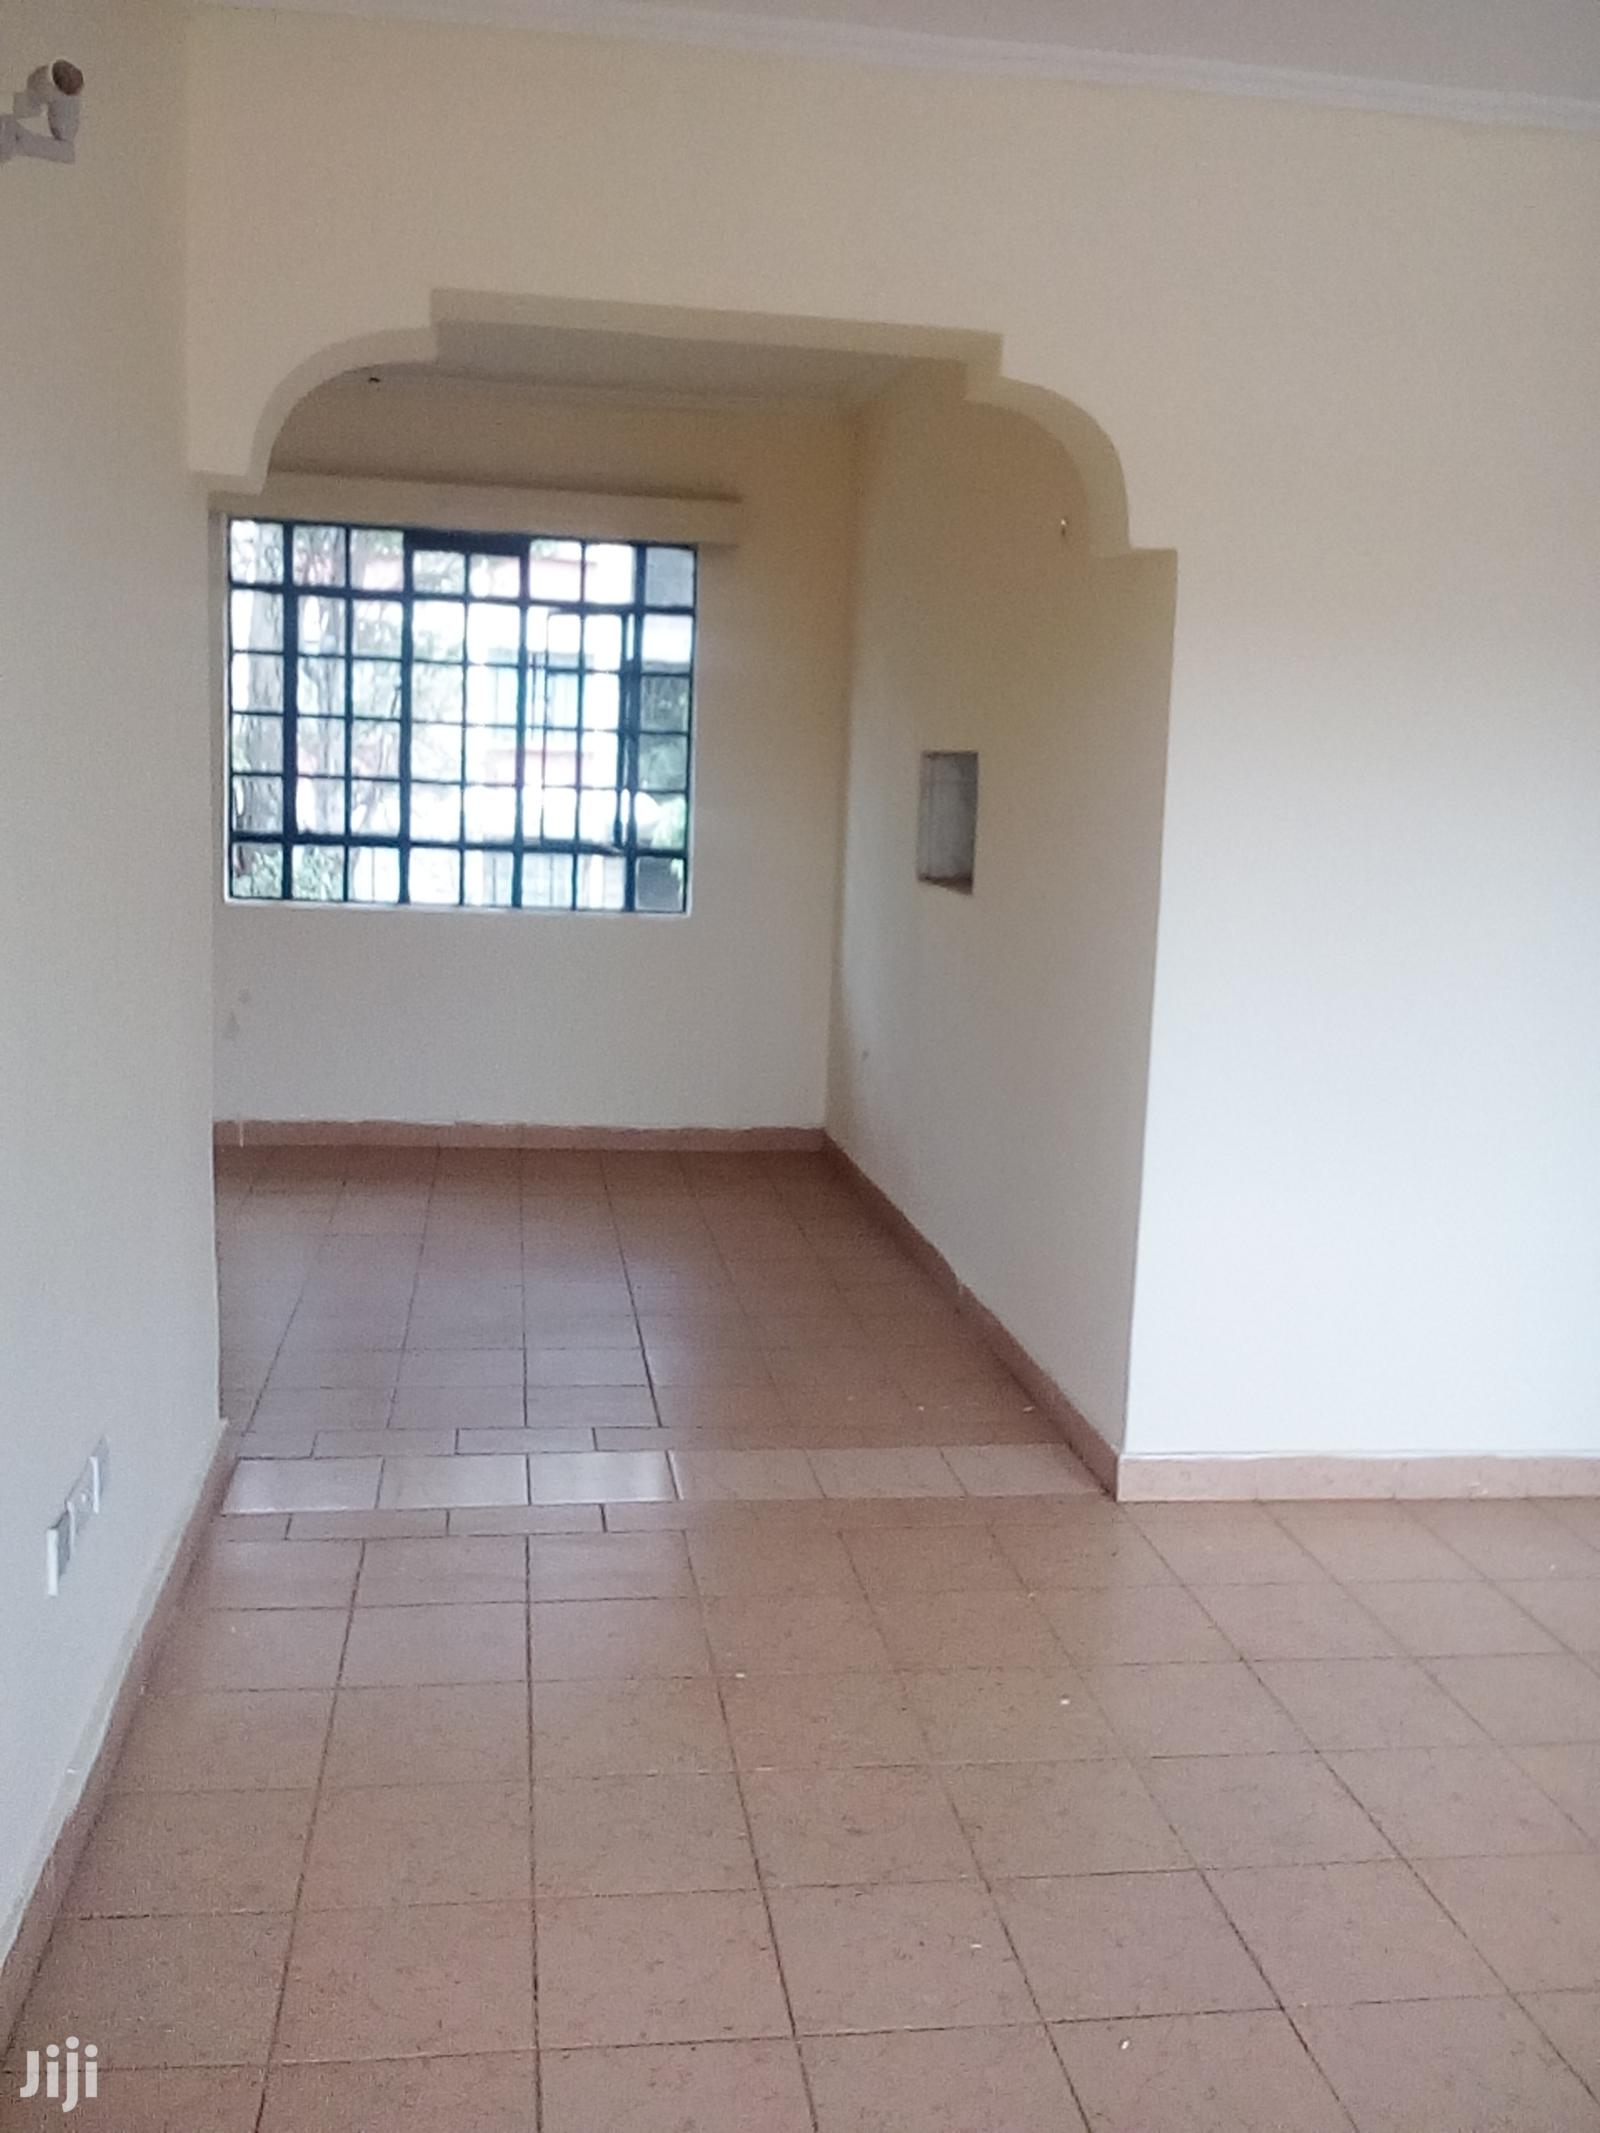 Esco Reltor Three Bedroom Apartment to Let. | Houses & Apartments For Rent for sale in Kileleshwa, Nairobi, Kenya